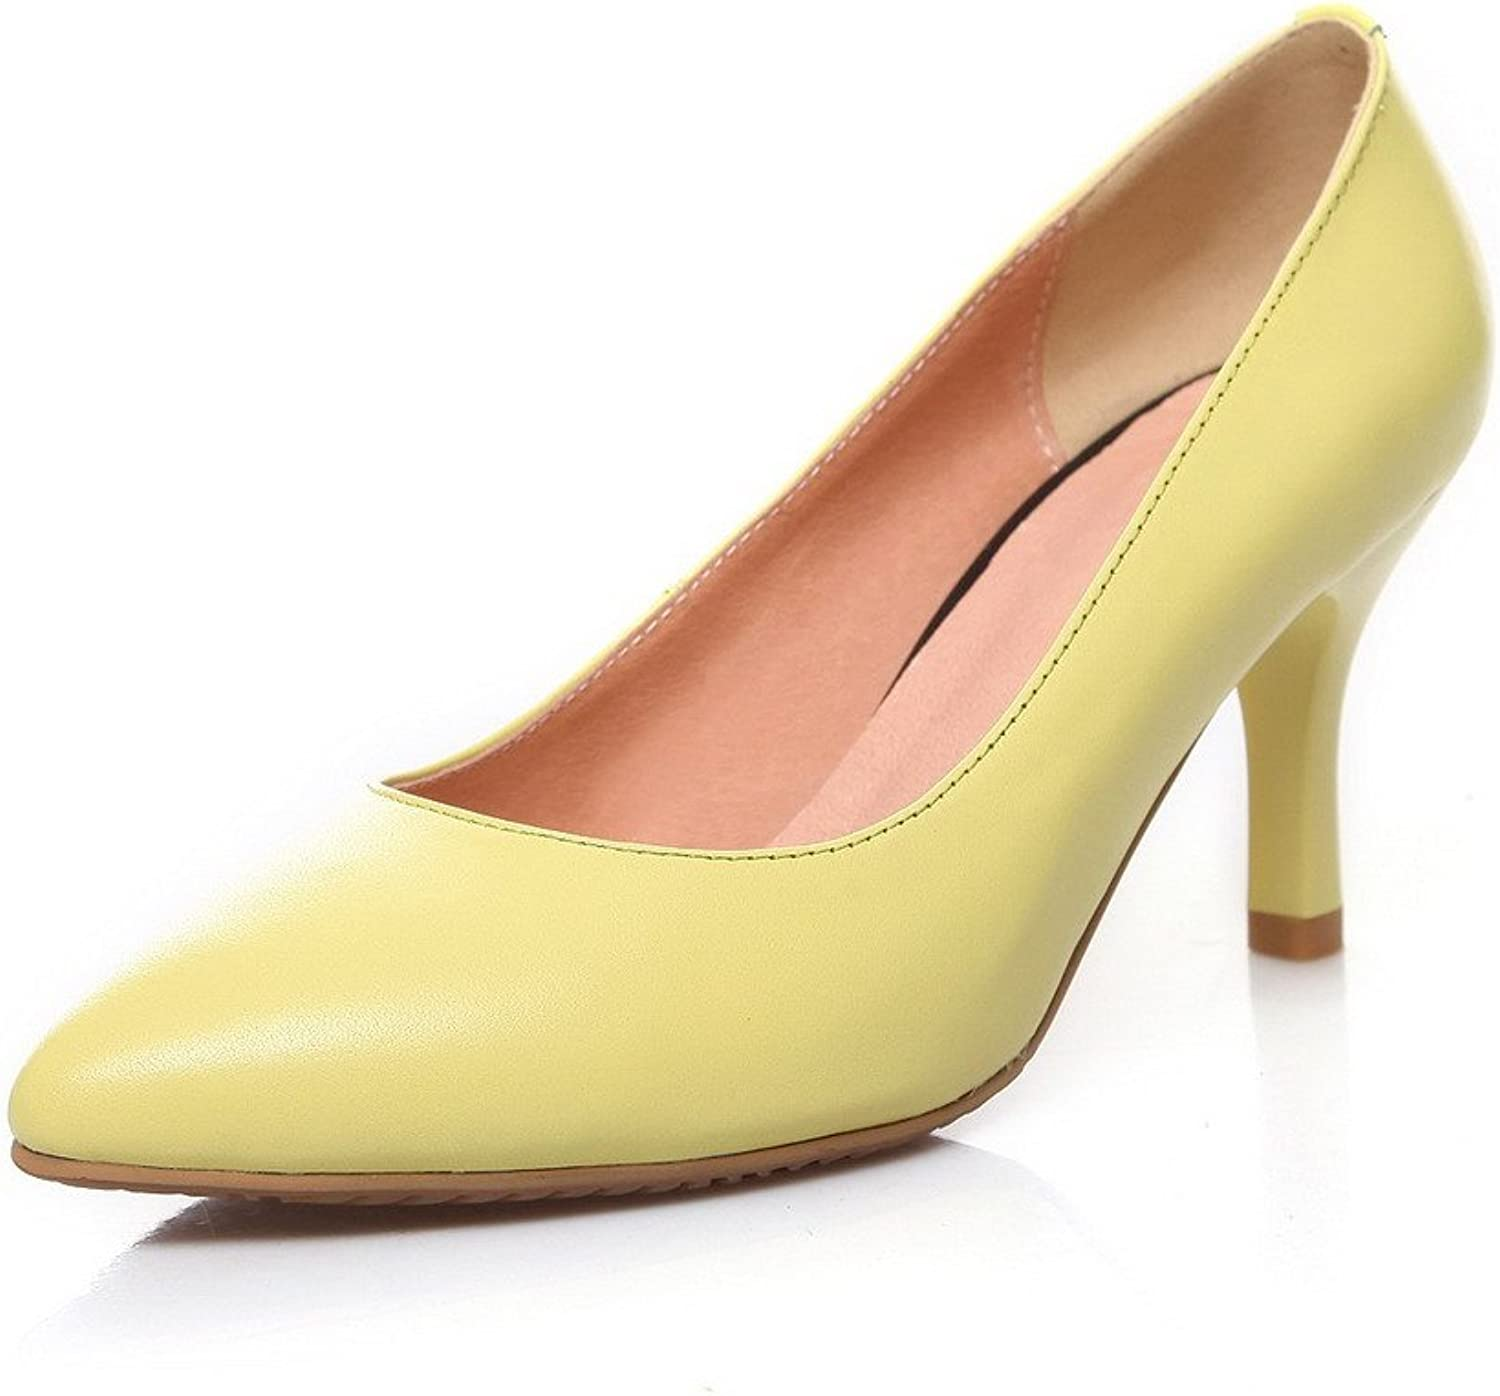 WeiPoot Women's Spikes-Stilettos Soft Material Solid Pull On Pointed Closed Toe Pumps shoes